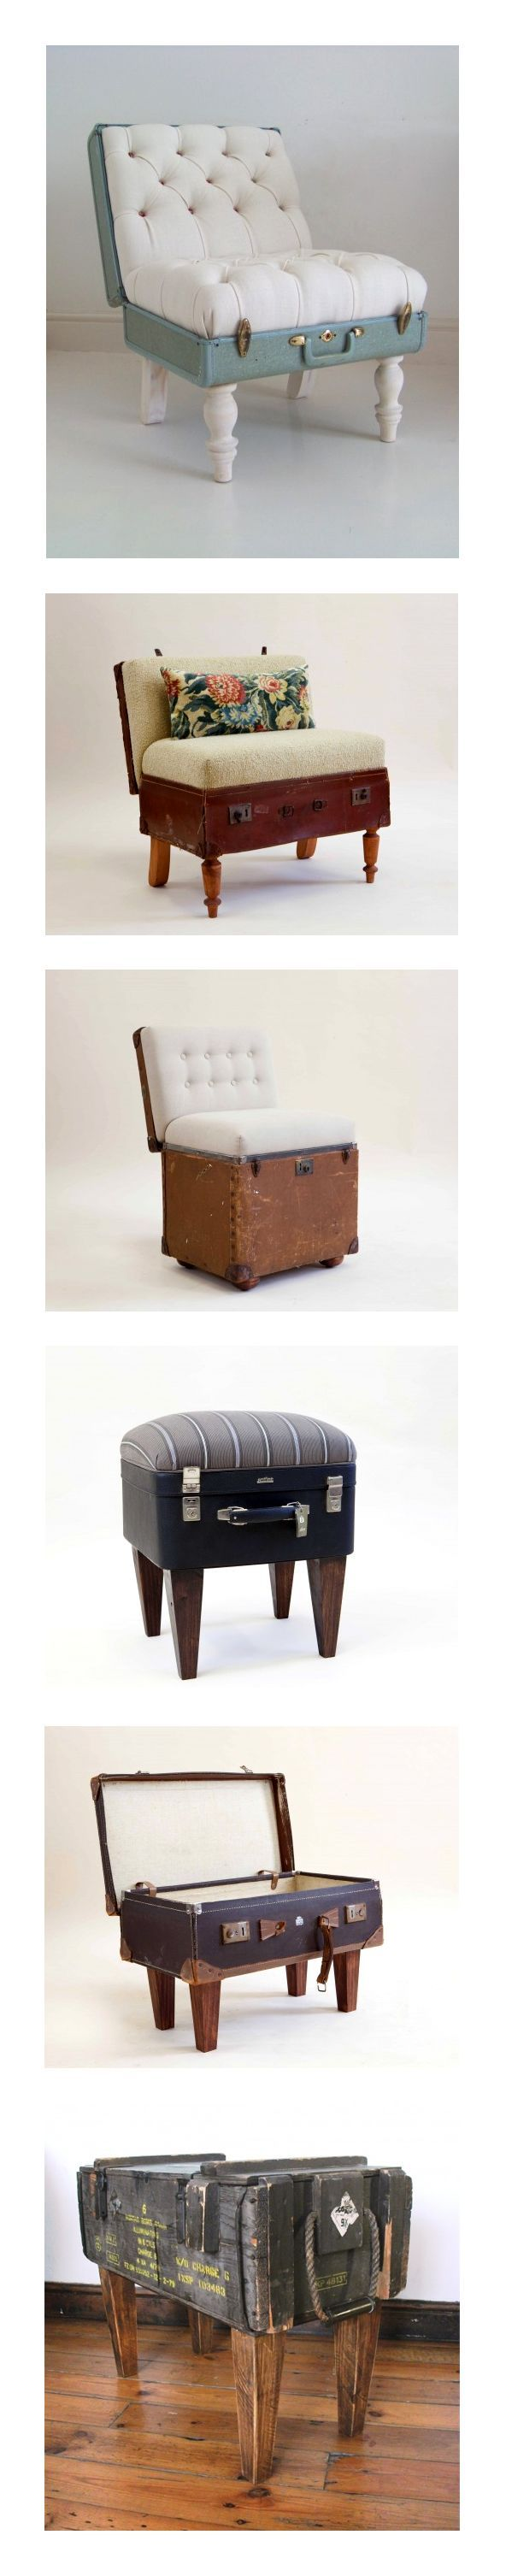 Katie Thompson's Recycled Furniture